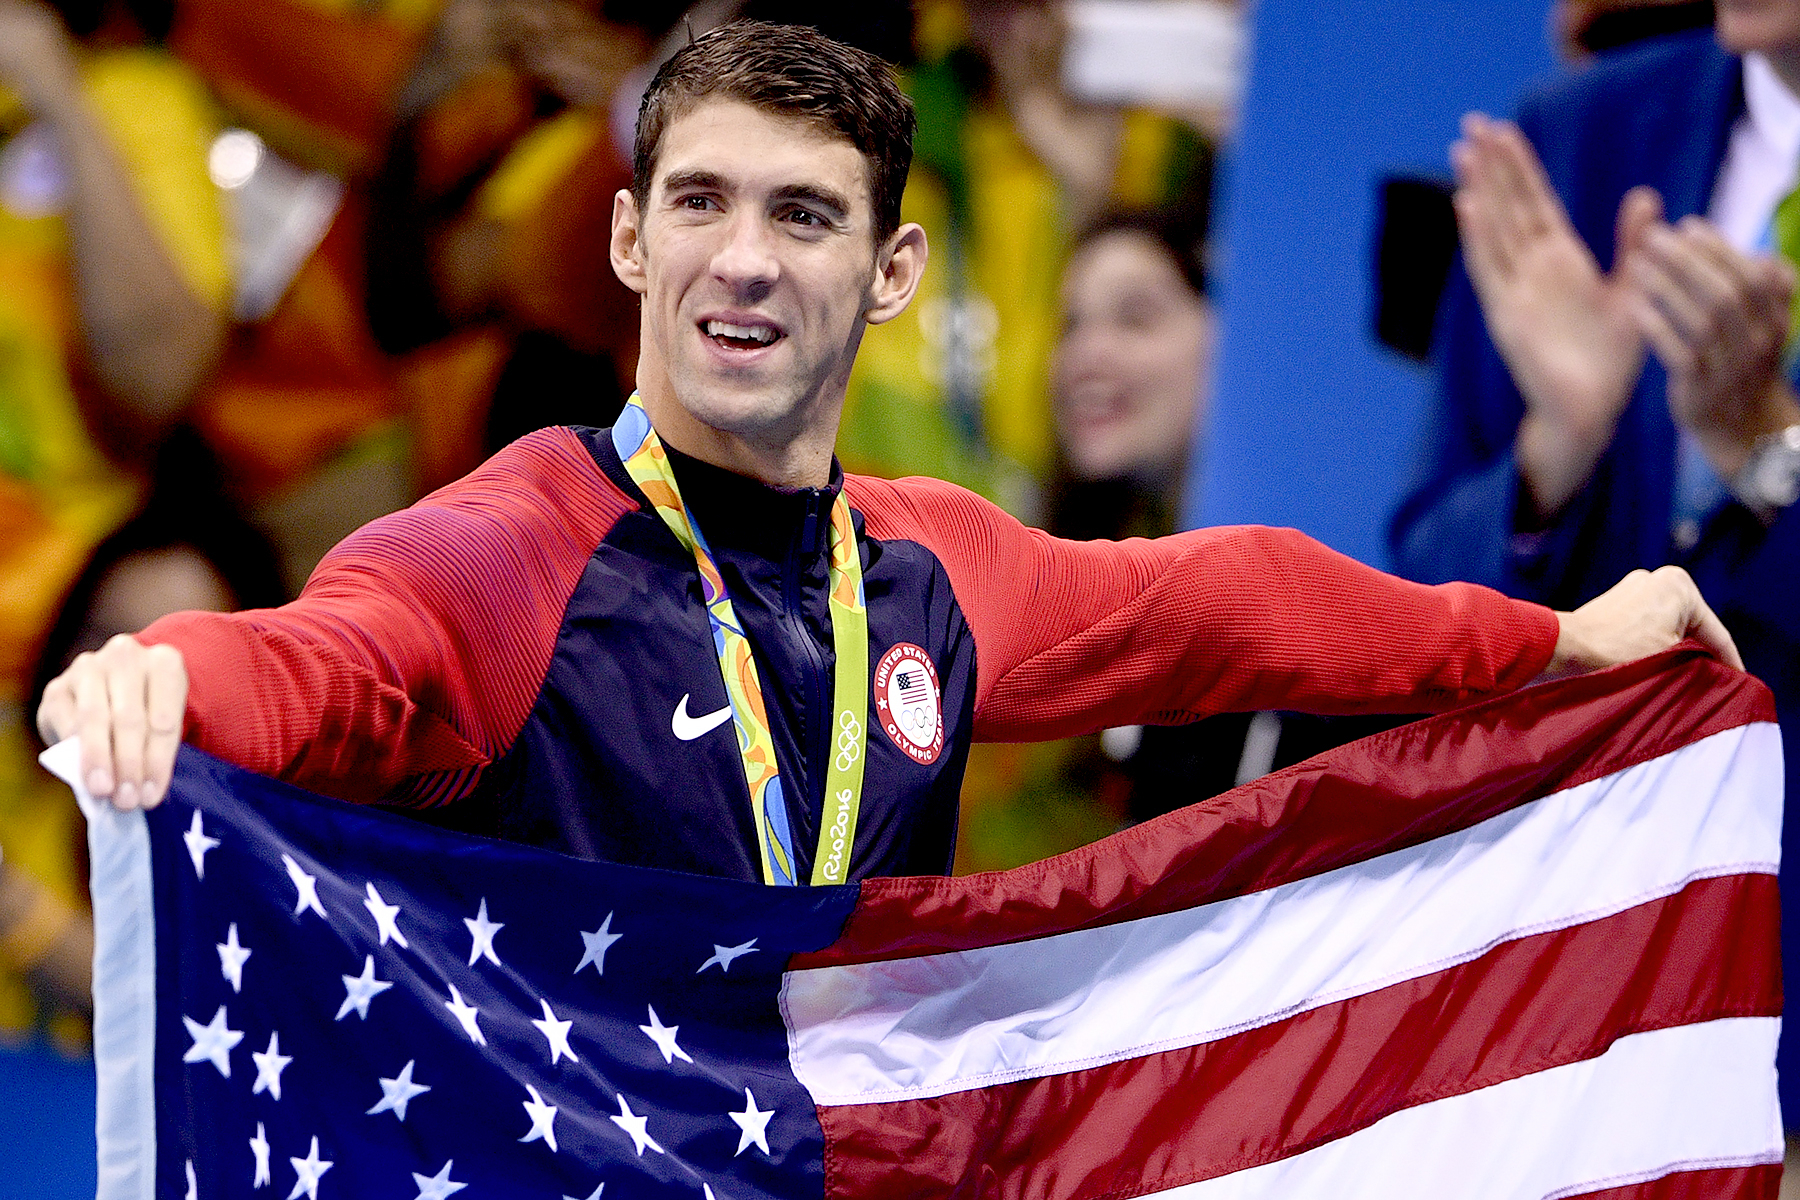 USA gold medalist Michael Phelps holds the U.S. flag after the podium ceremony of the men's swimming 4x100m Medley Relay Final at the Rio 2016 Olympic Games at the Olympic Aquatics Stadium in Rio de Janeiro on August 13, 2016.